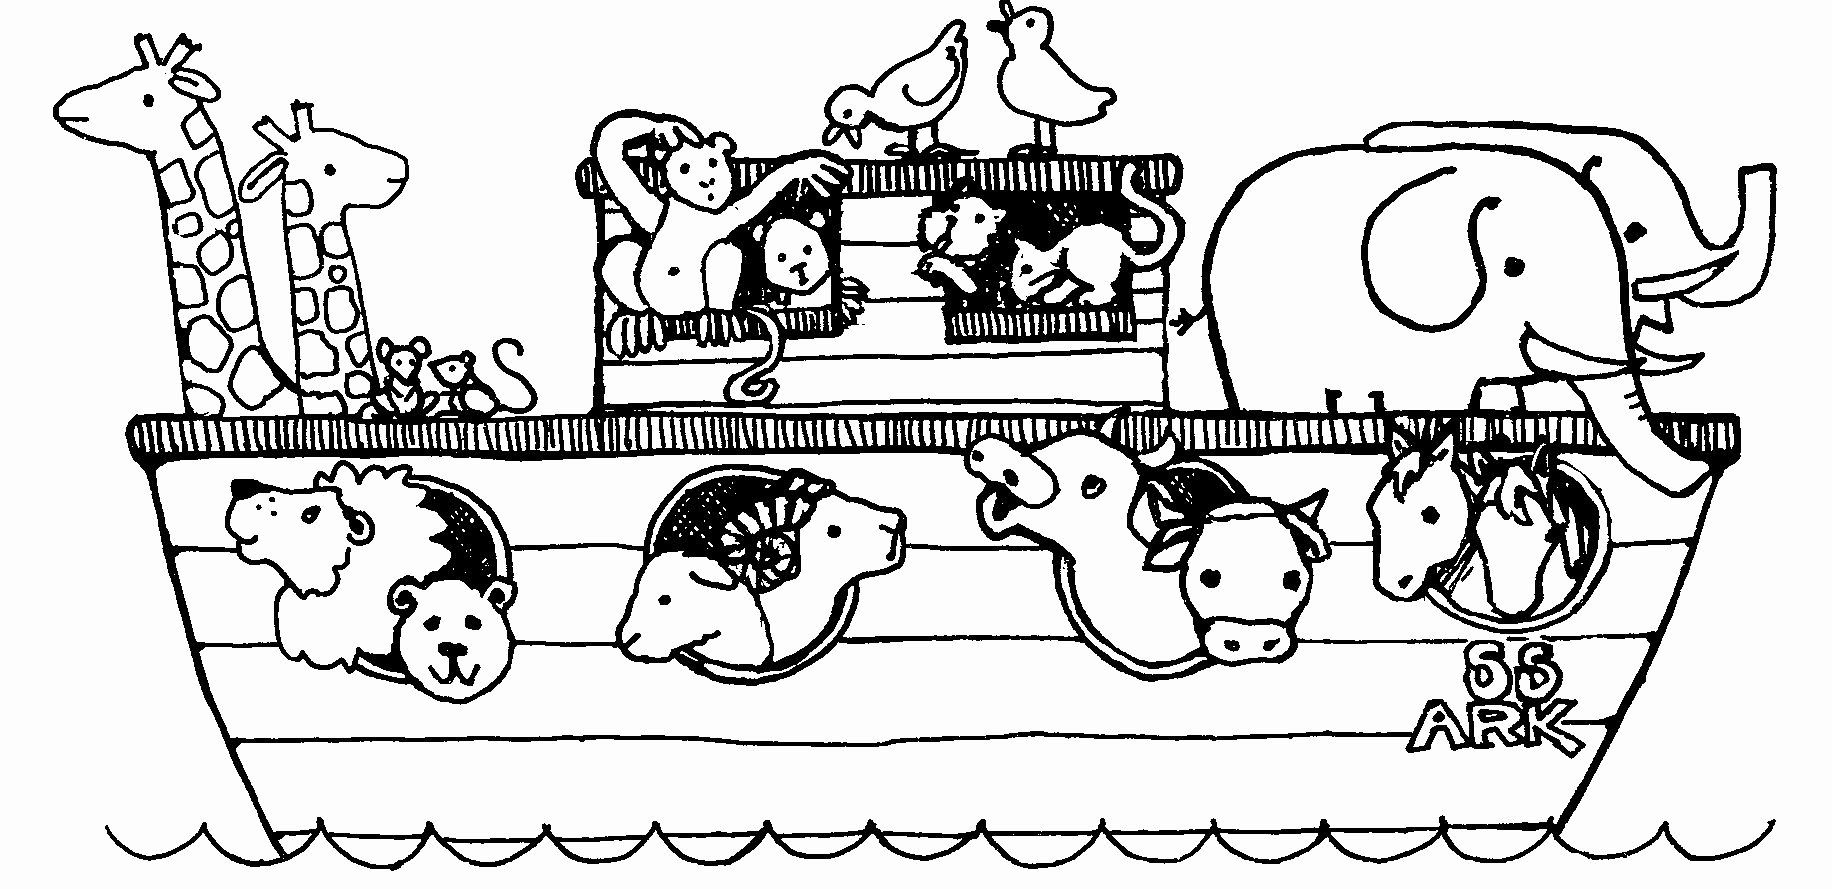 Noah 039 S Ark Rainbow Coloring Page Beautiful Noah S Ark Coloring Page 02 Sunday Preschool Coloring Pages Coloring Pages Inspirational Animal Coloring Pages